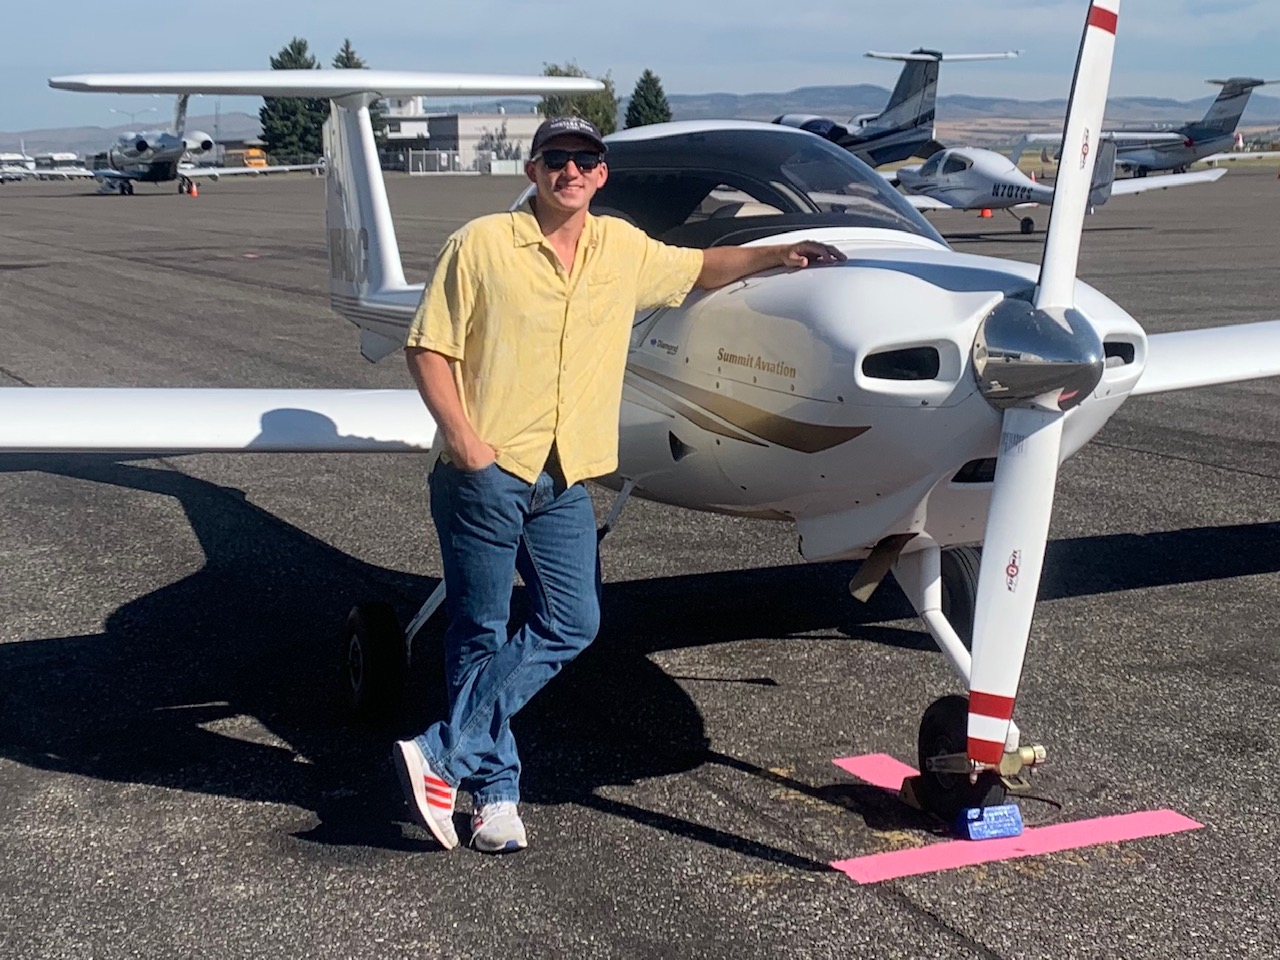 Gross, Spencer 2 First Solo 8-8-20.jpg